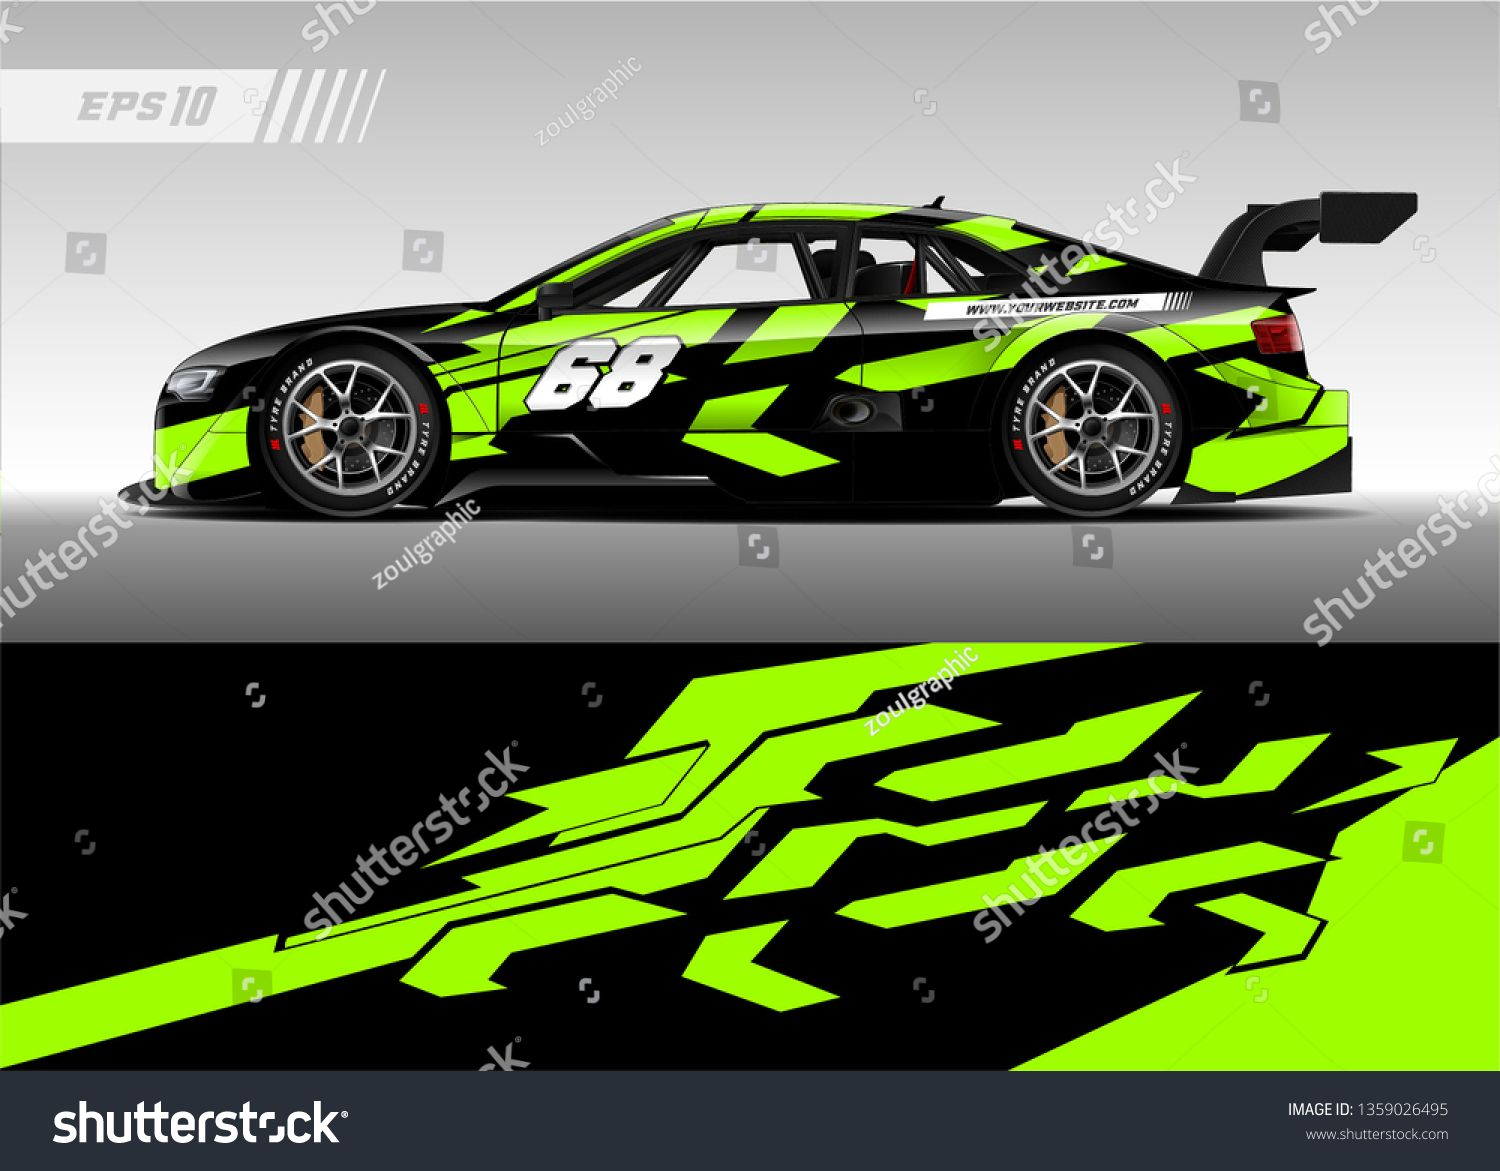 Racing Car Decal Design Vector Graphic Abstract Stripe Racing Background Kit Designs For Wrap Vehicle Race Car Rally Adventure A Car Paint Jobs Car Wrap Race Cars